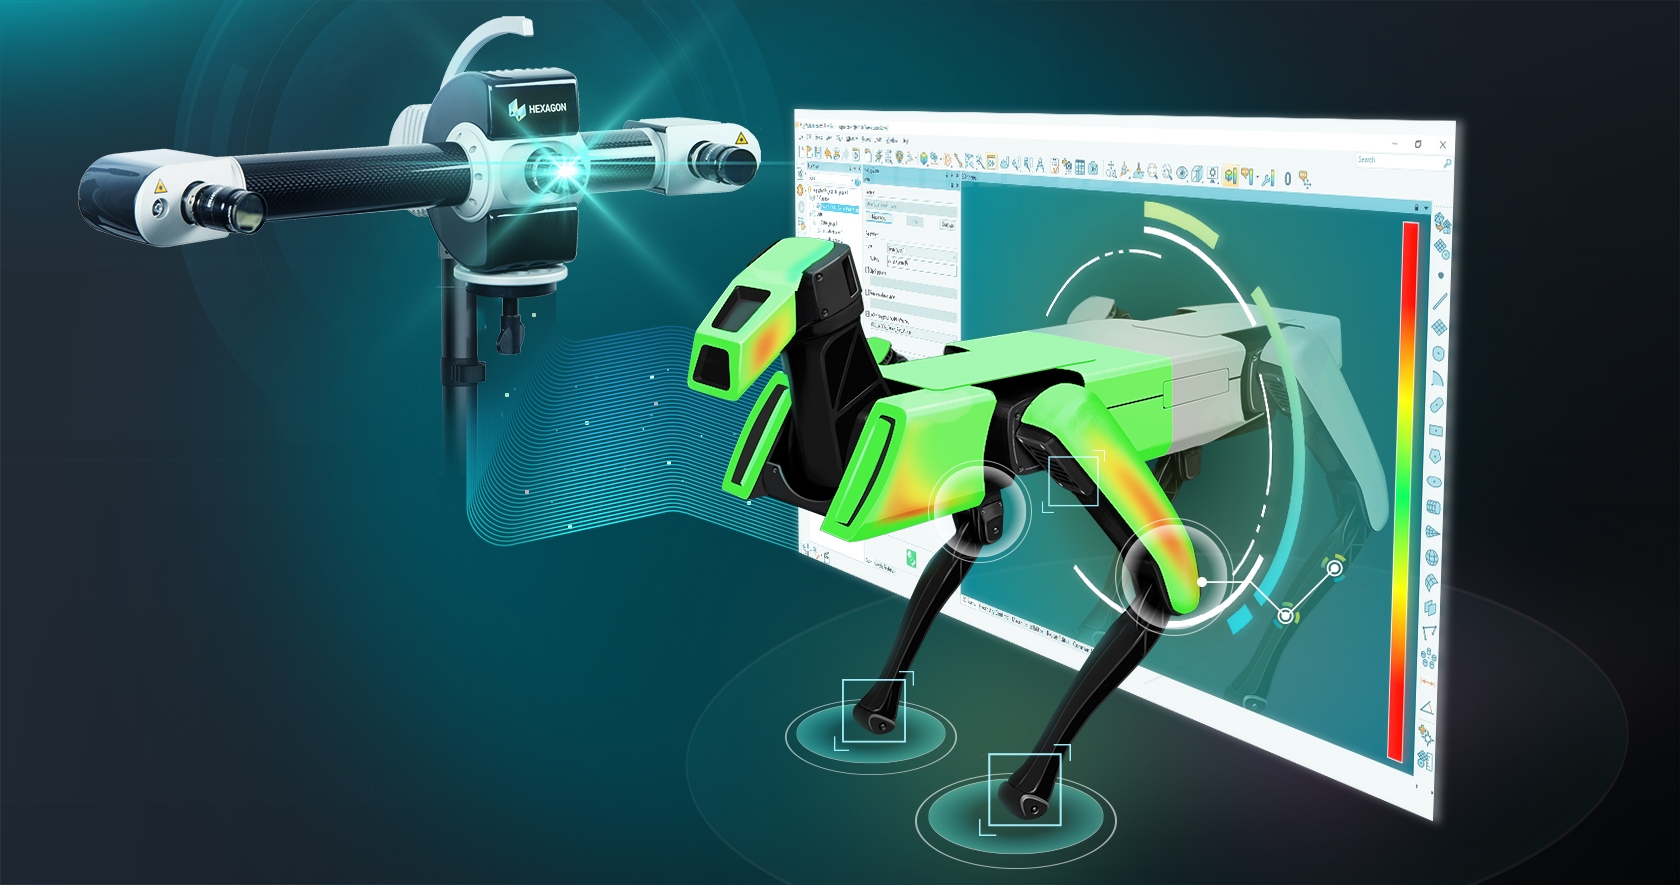 Dedicated PolyWorks interface for Hexagon structured light scanners